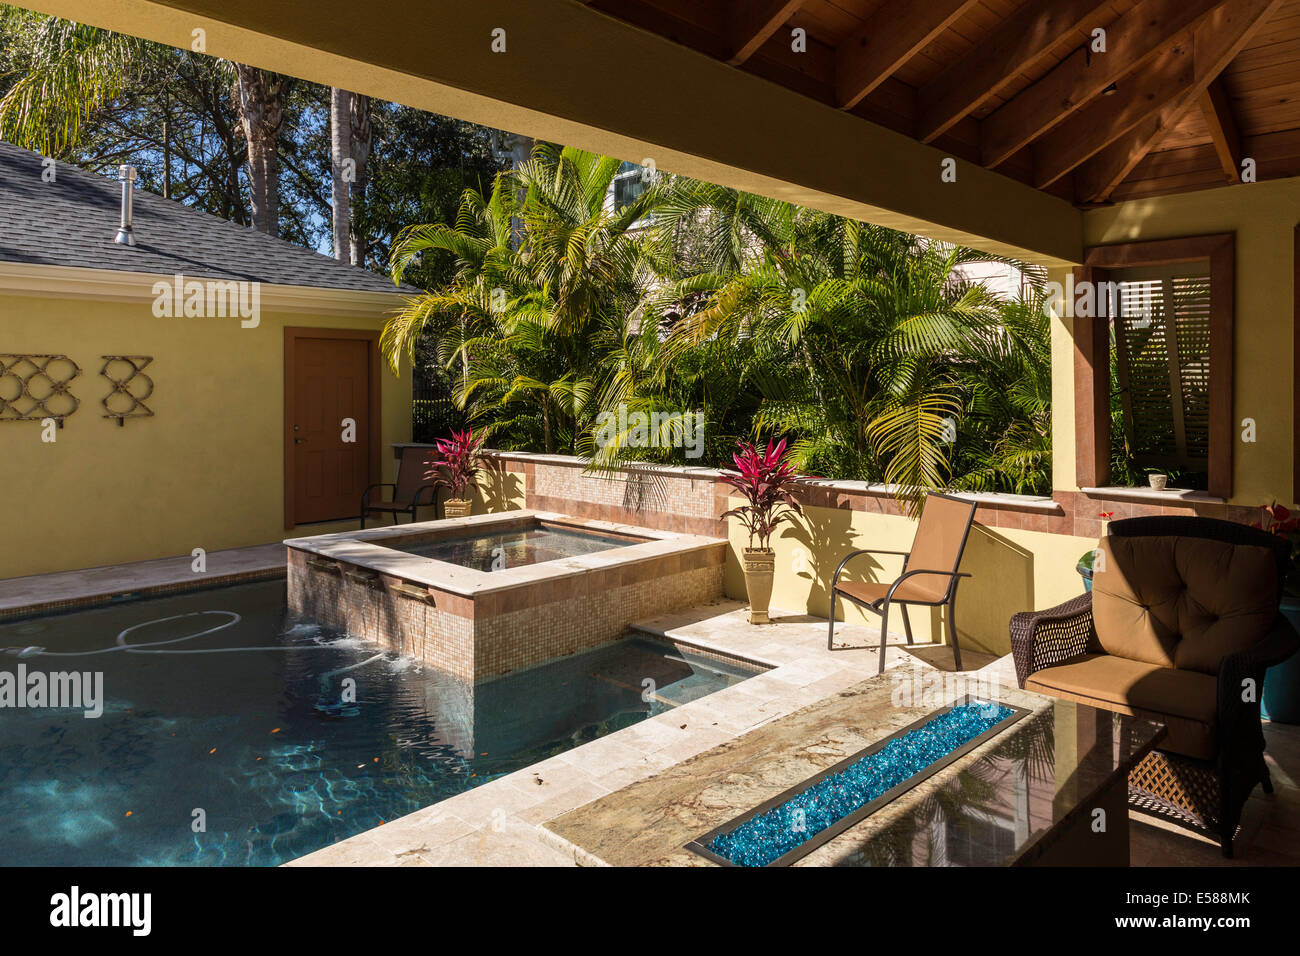 Swimming Pool, Jacuzzi , Deck and Outdoor Room, Showcase Residential ...